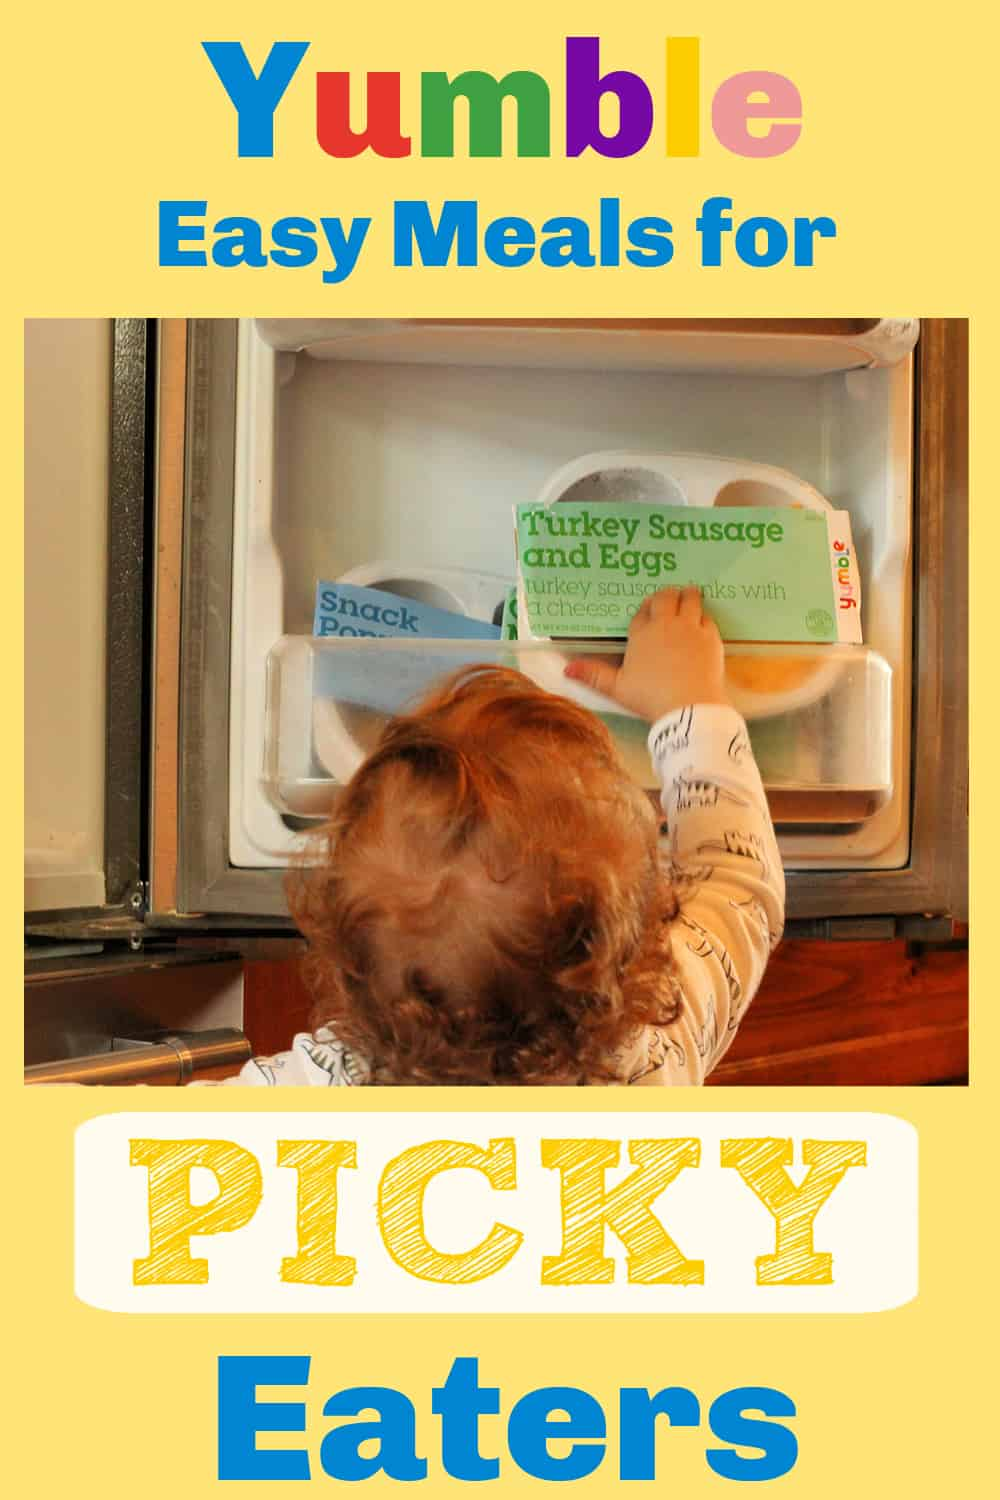 Yumble easy meals for picky eaters